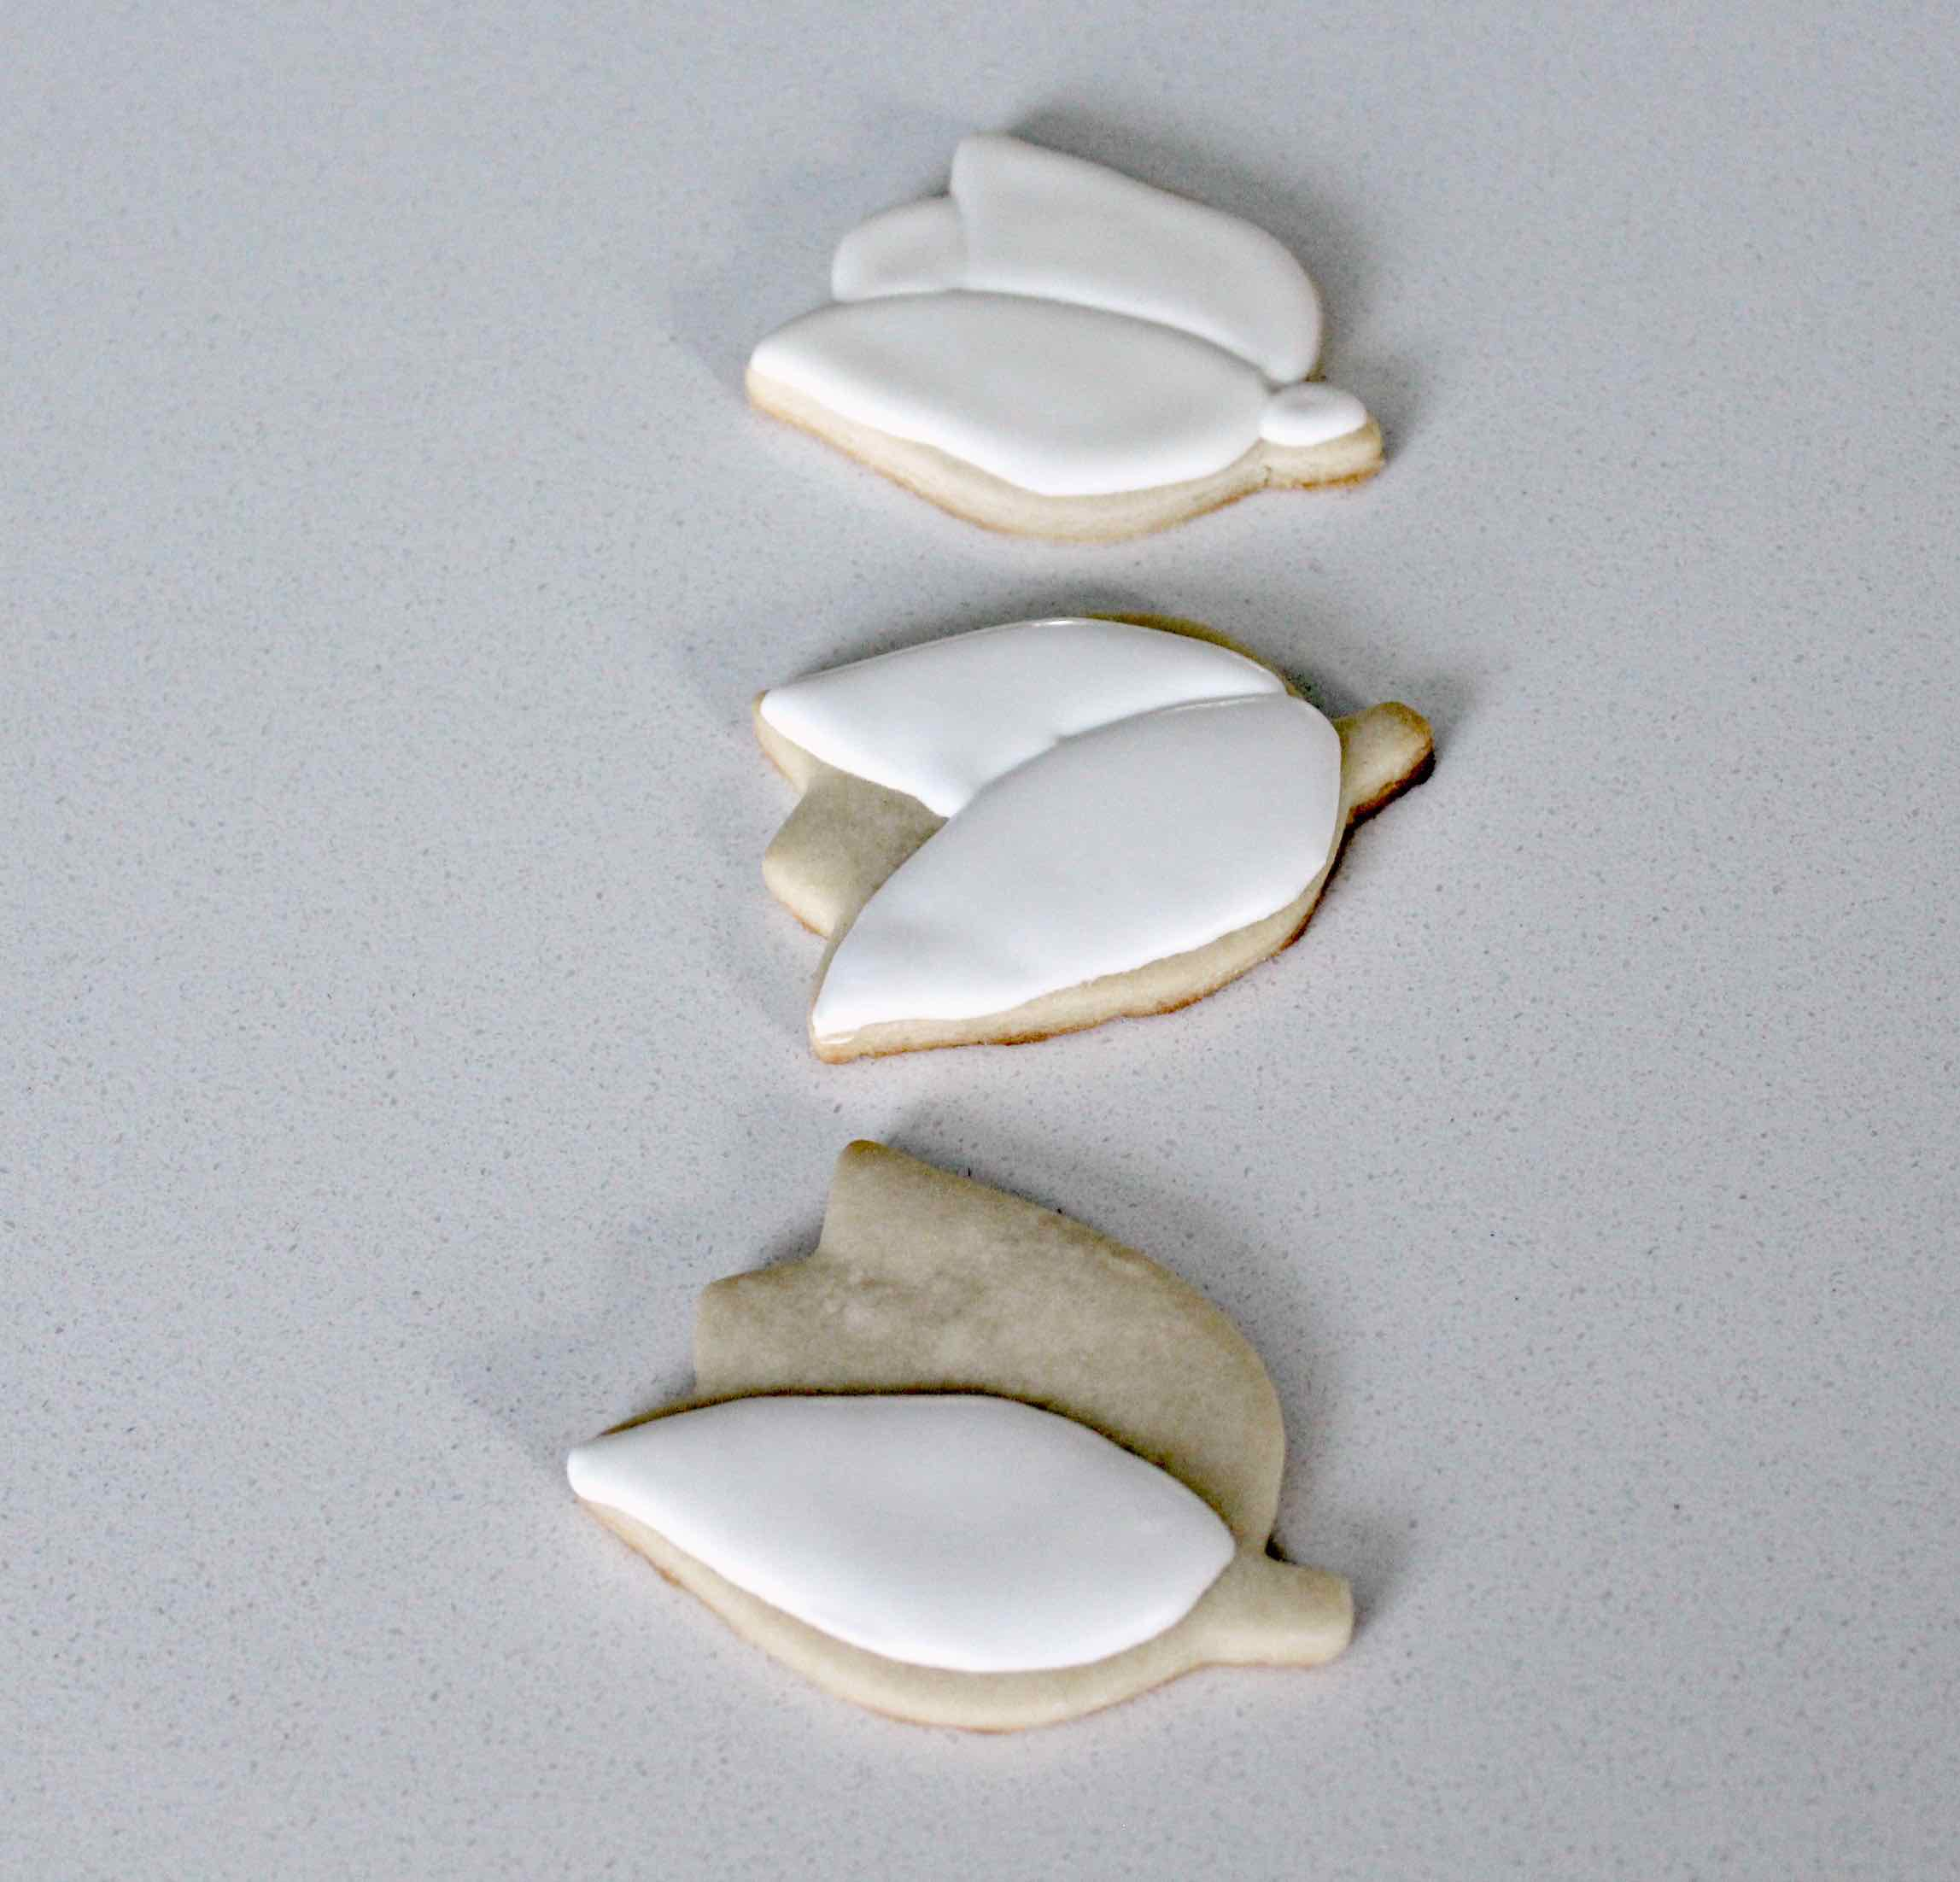 Steps by step how to flood tulip sugar cookies for a cooke bouquet